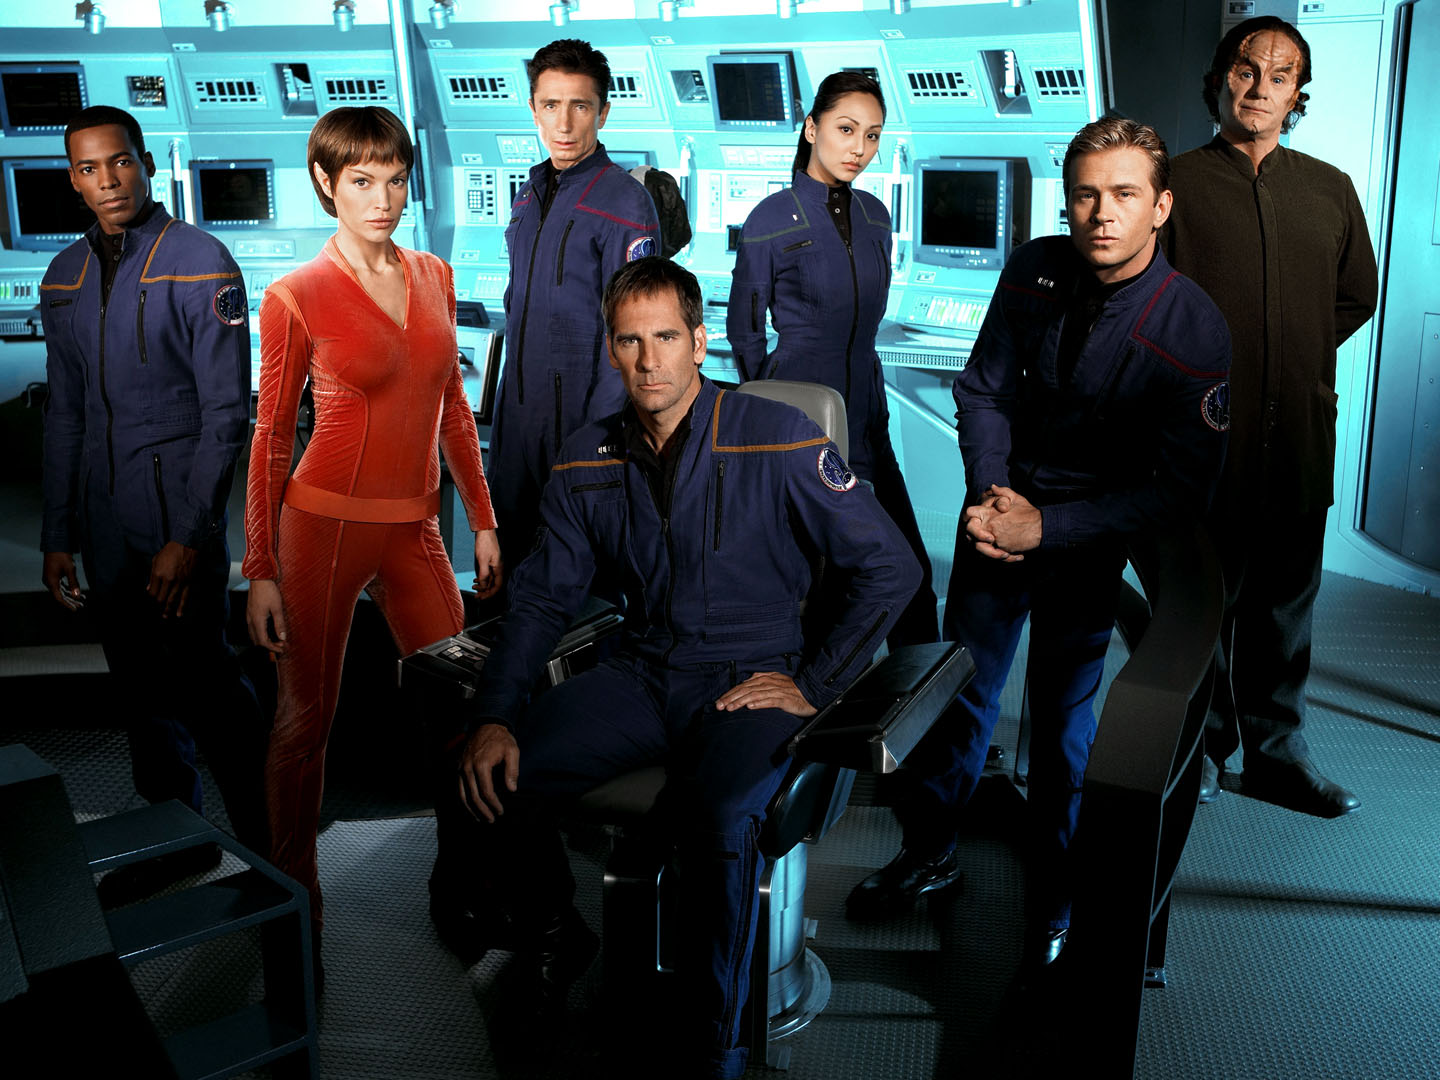 cast-of-star-trek-enterprise-5.jpg